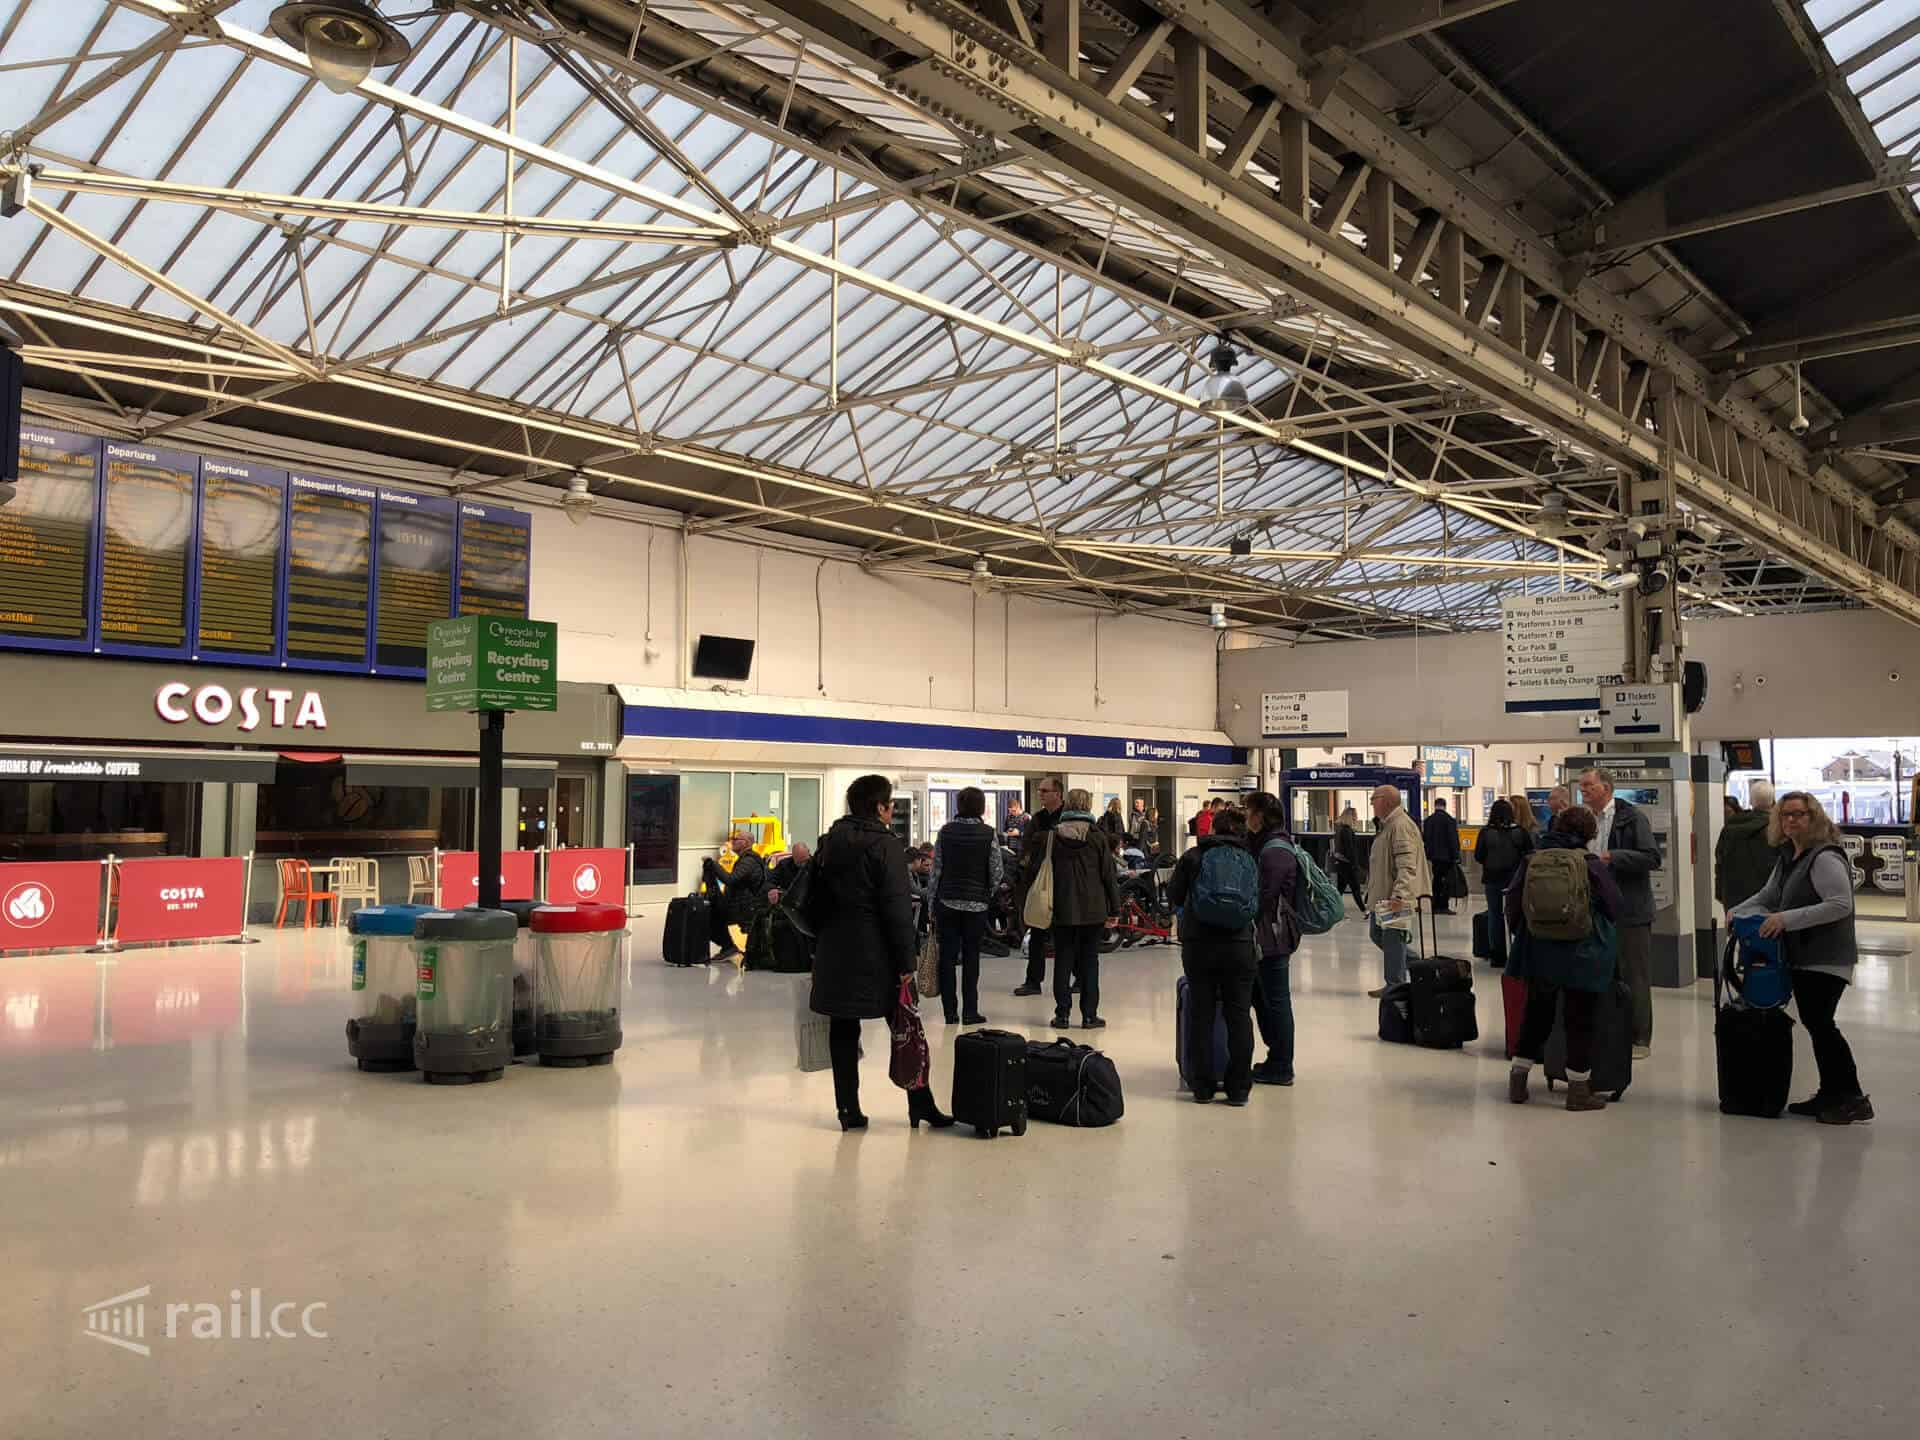 Inverness train station-Departures